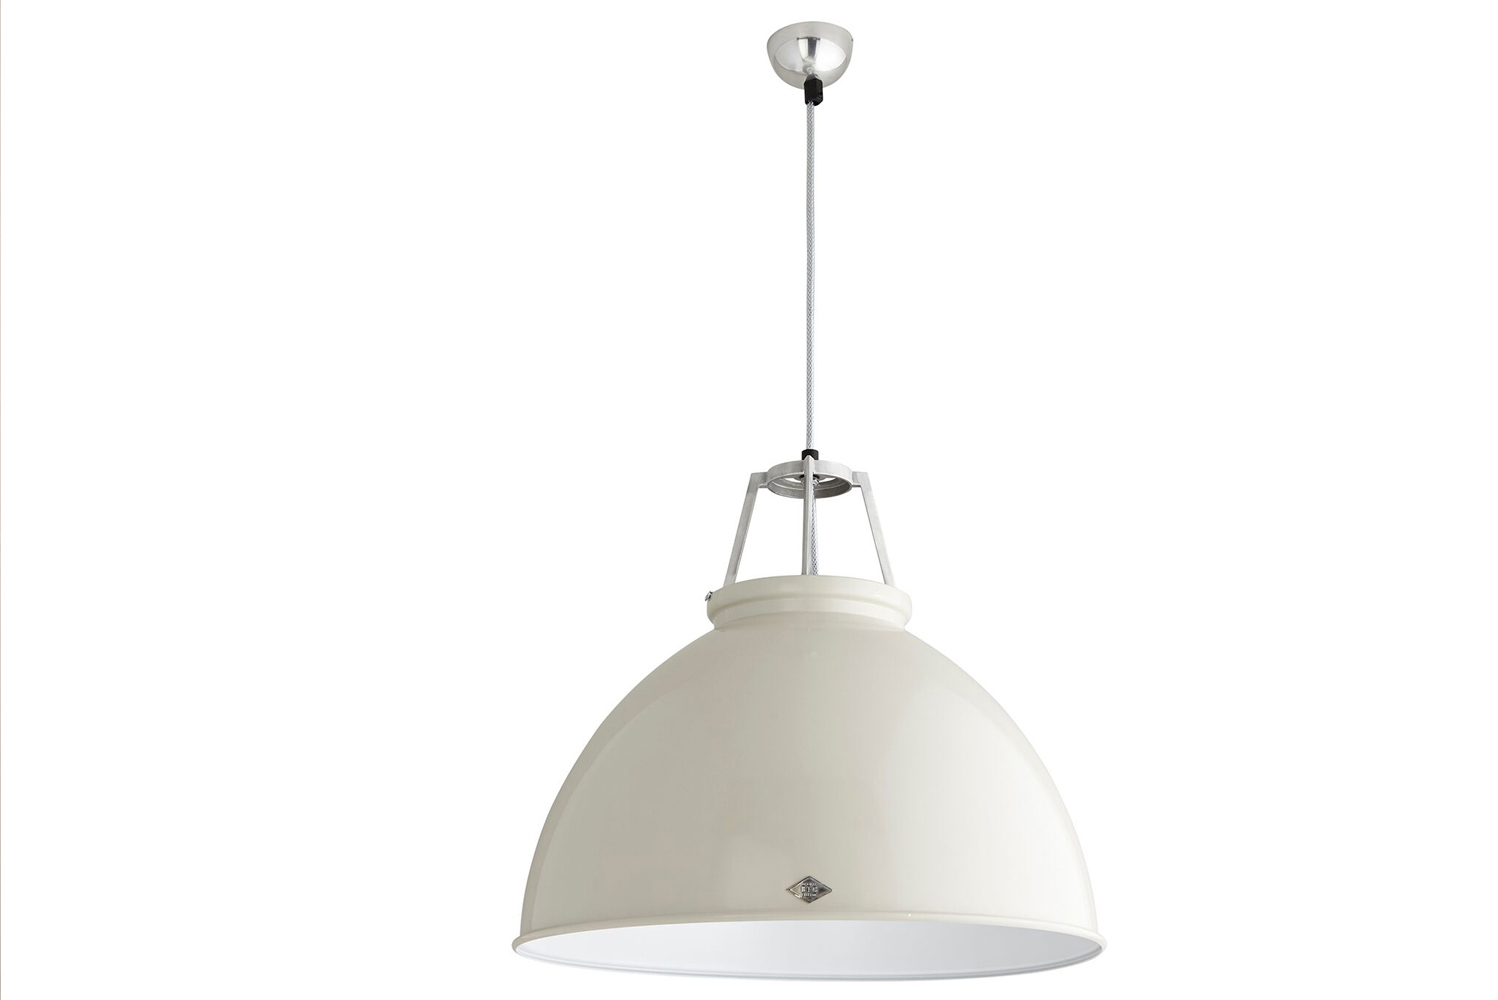 Original BTC launched the Titan pendant, which features a hand-spun metal shade crafted in the company's metal workshop in central England.